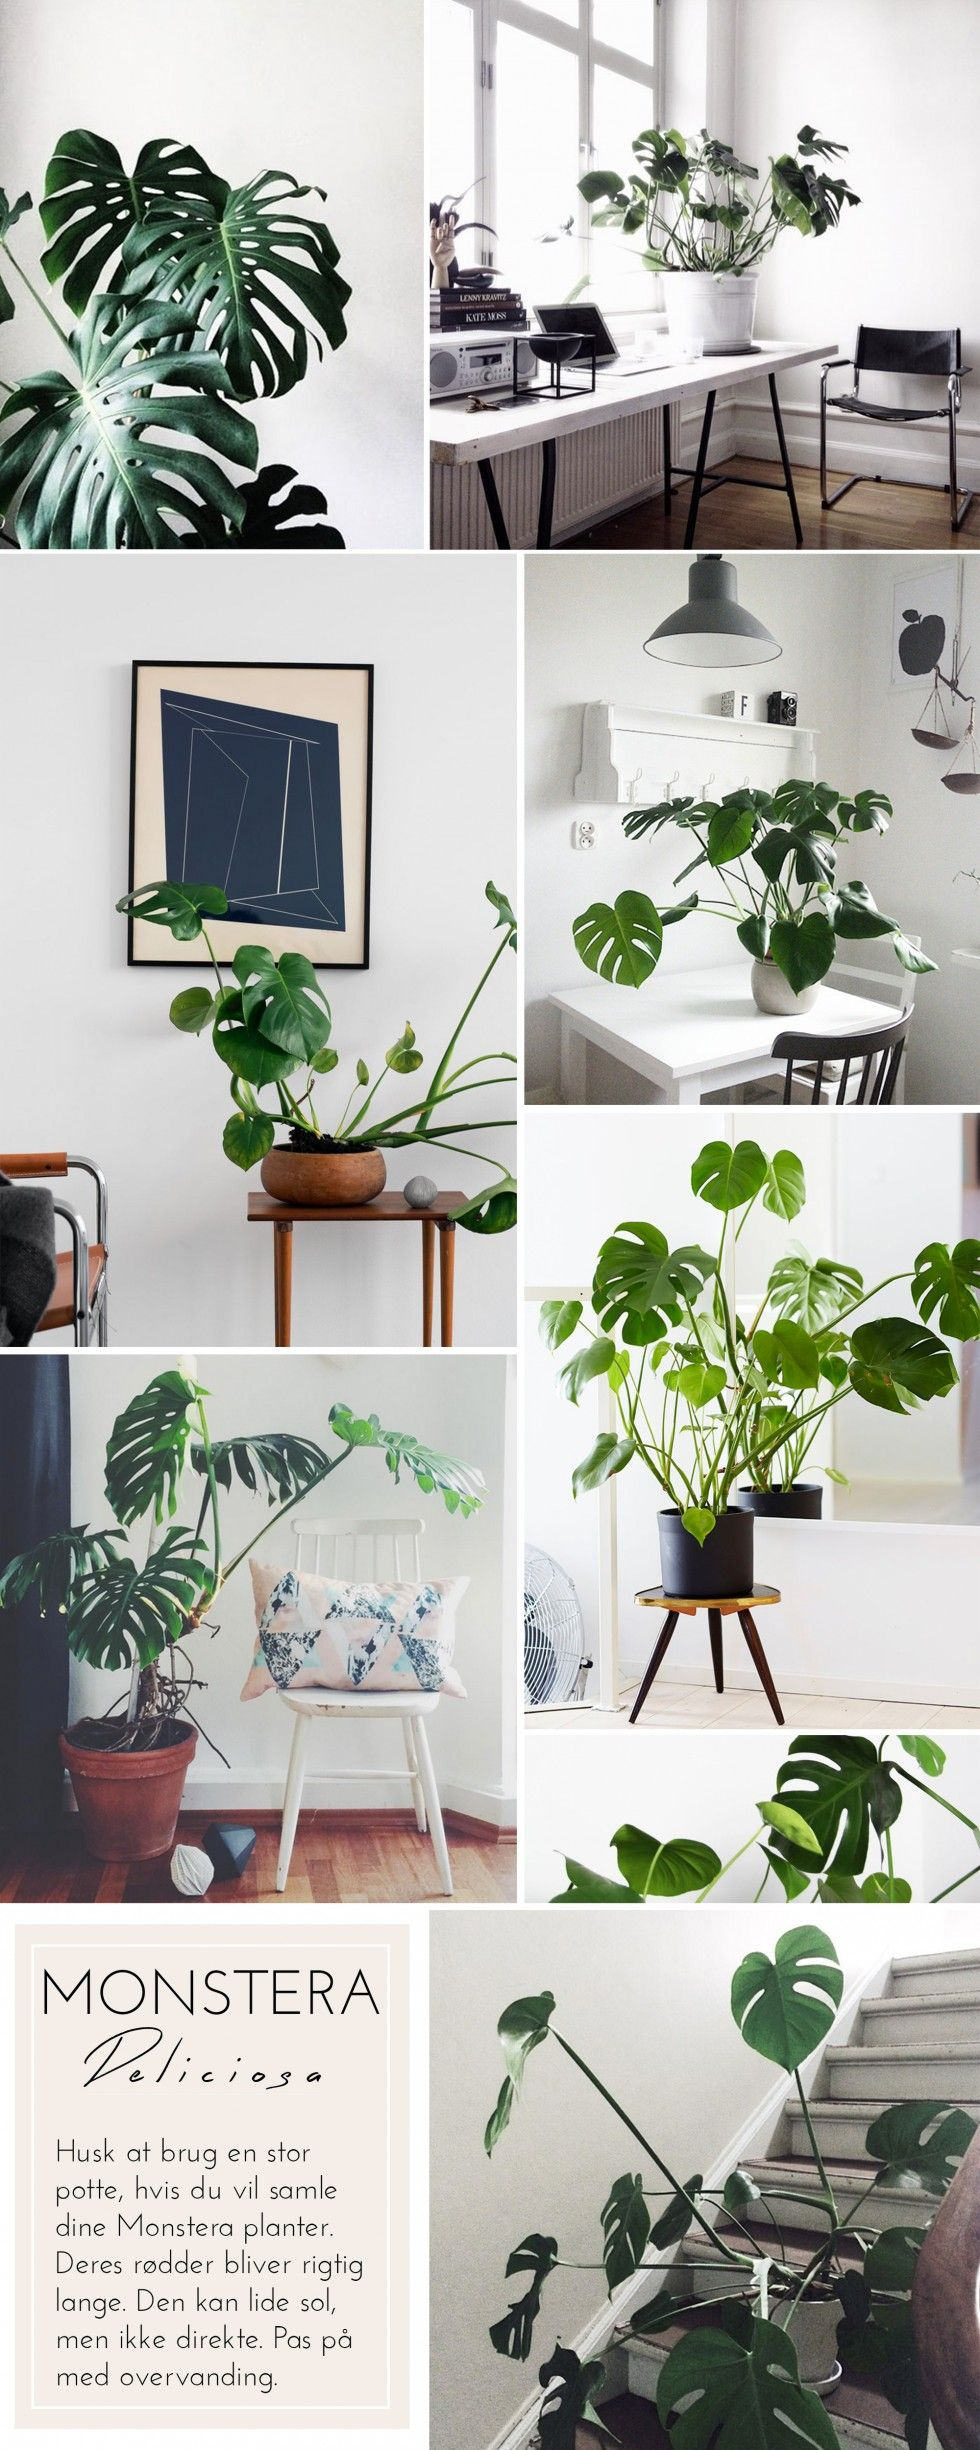 Where And How To Style Plants Around The House